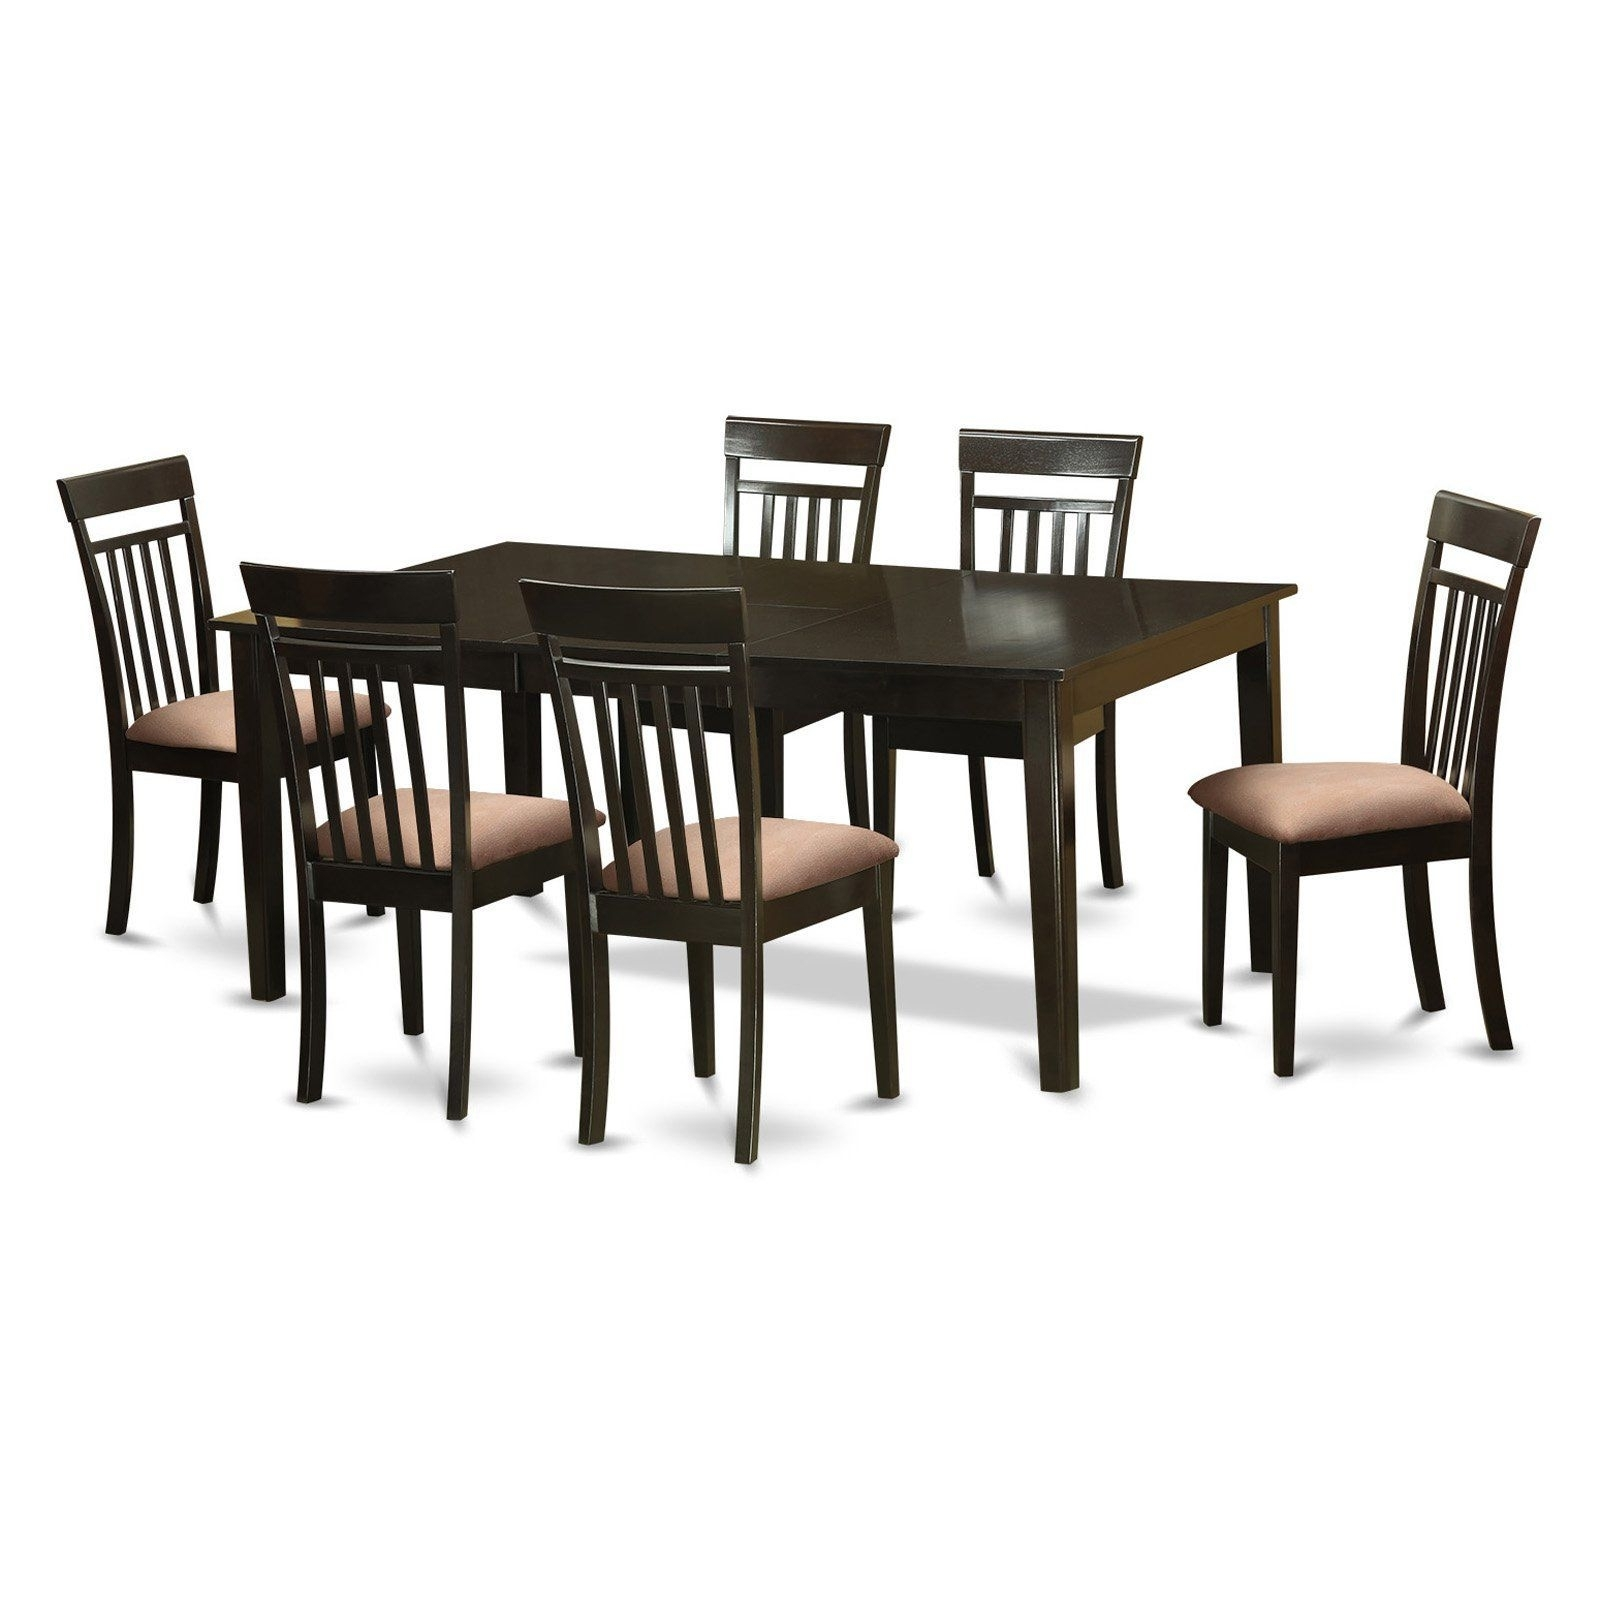 East West Furniture Henley 7 Piece Extension Dining Table Set With In Most Popular Rocco Extension Dining Tables (Gallery 23 of 25)